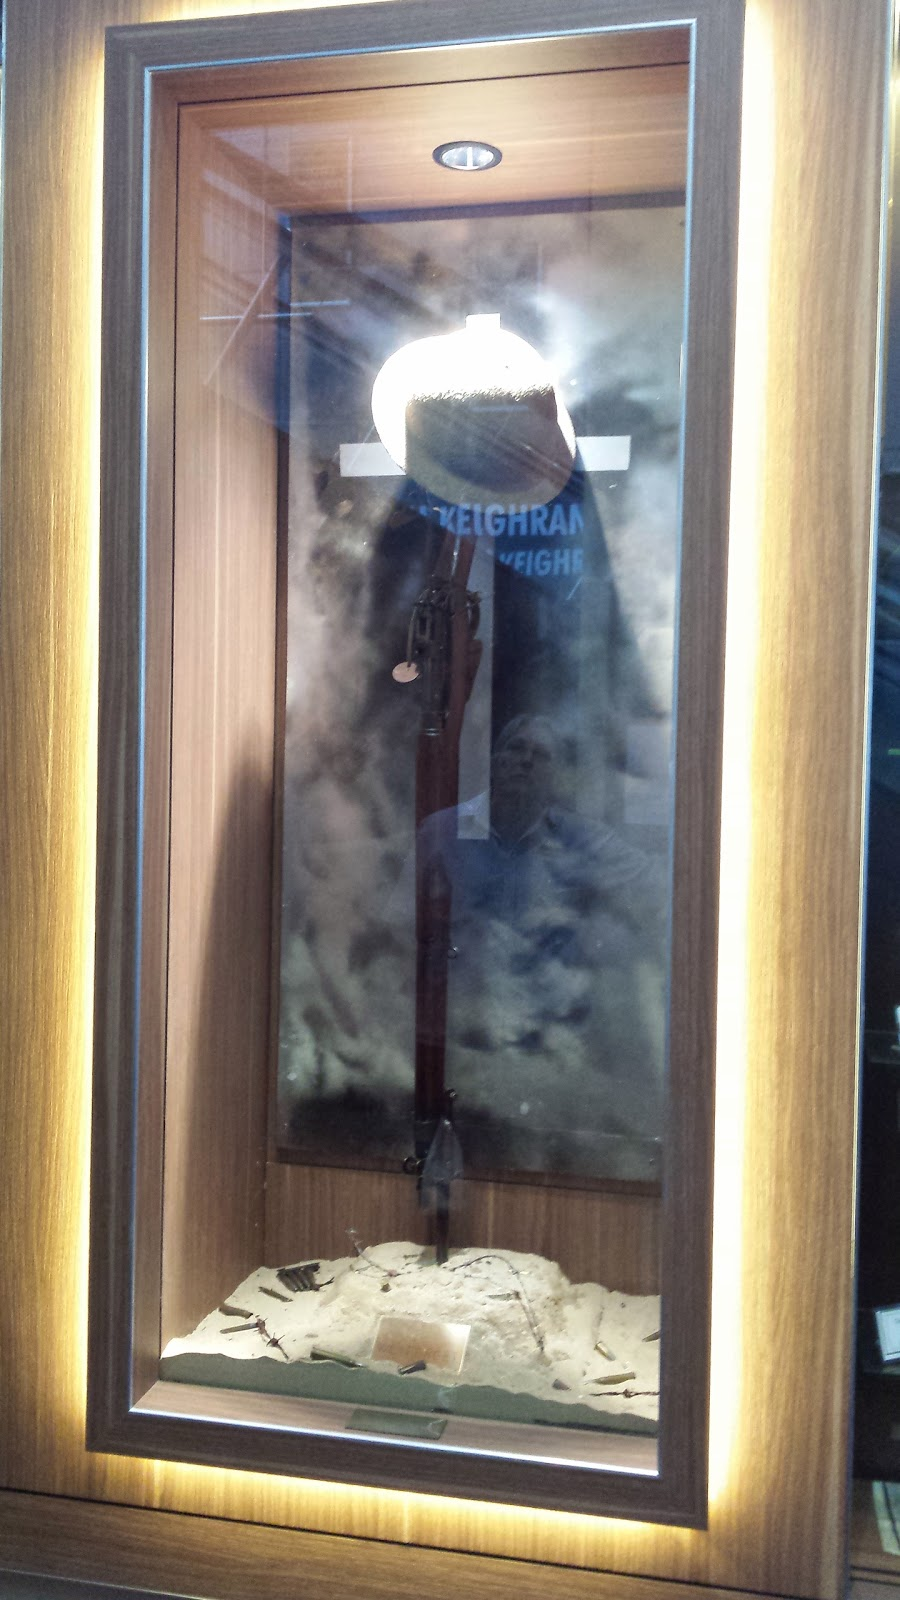 display case at RSL Museum Redcliffe featuring rifle and hat propped in bed of sand with bullets in front of cross